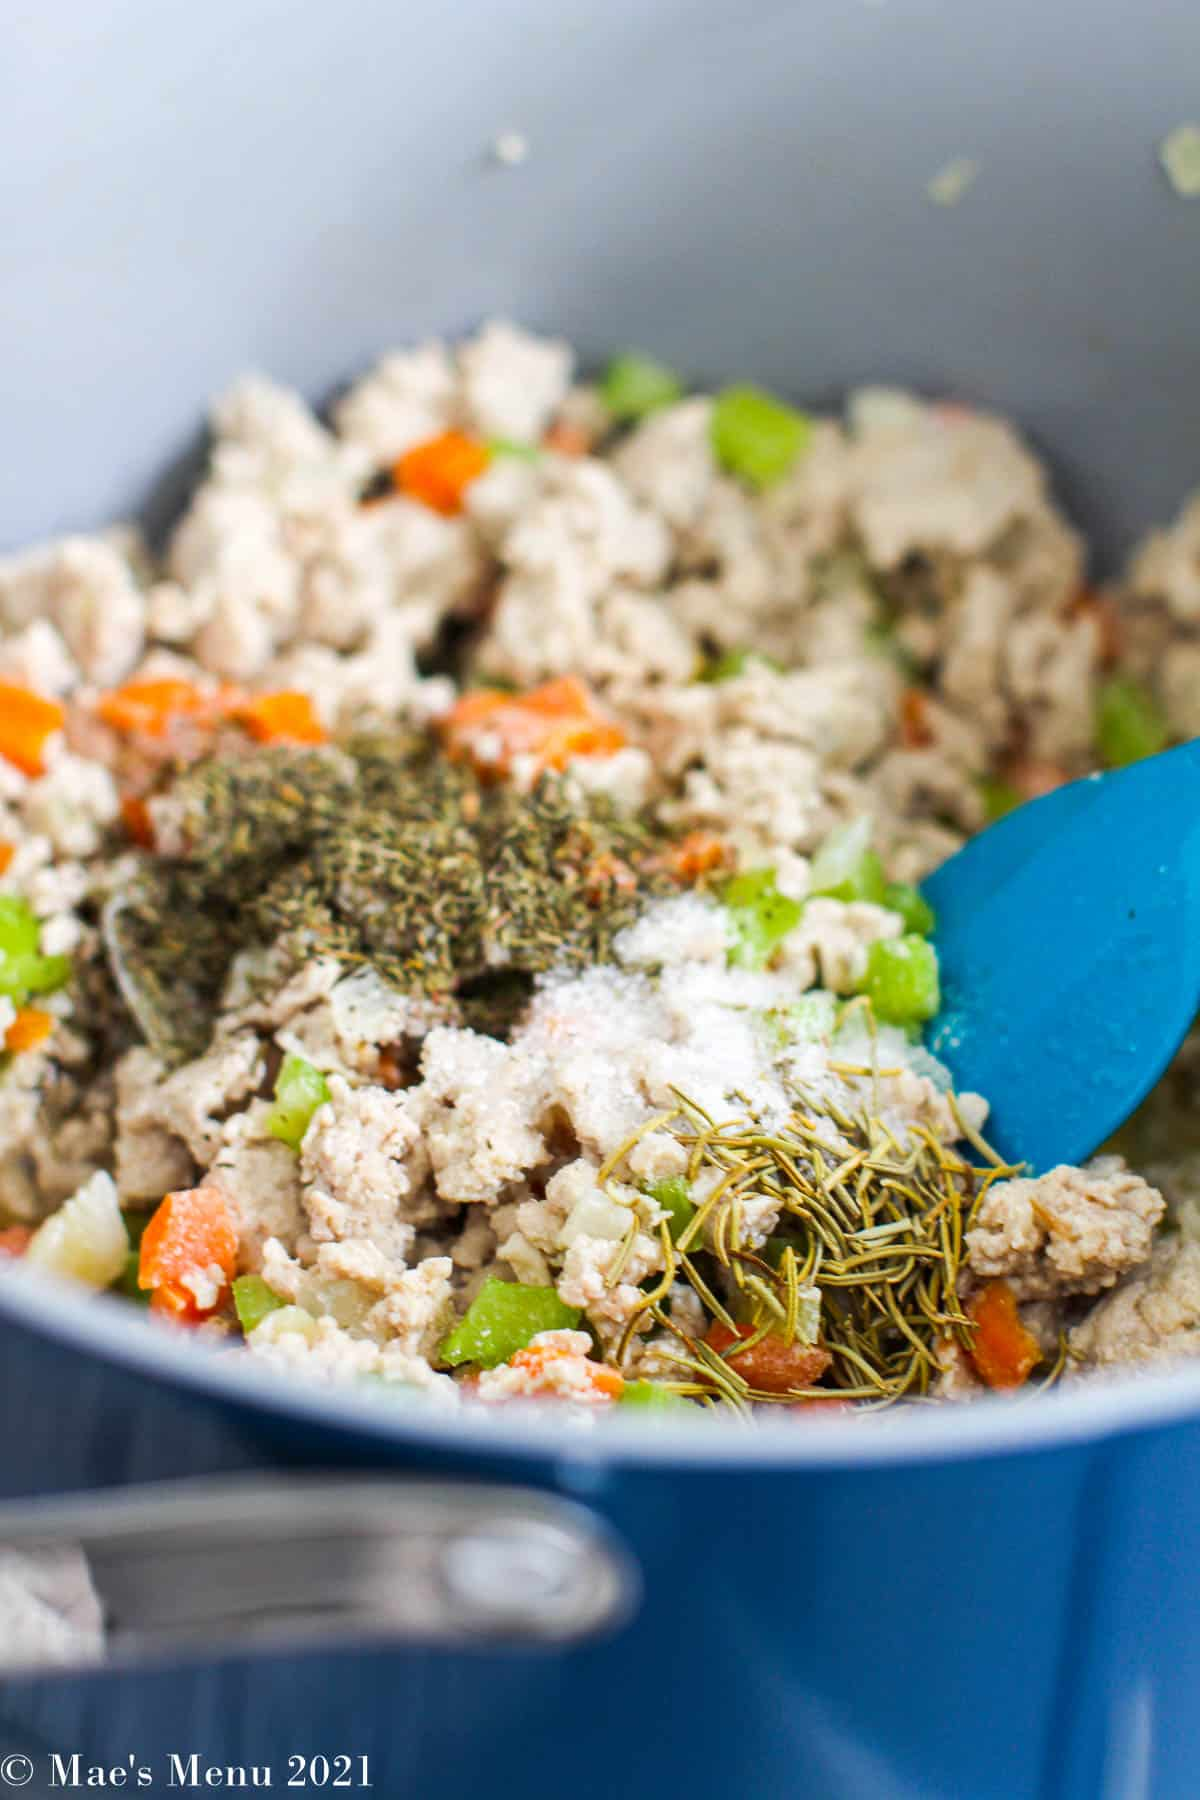 Add the seasonings to the pot with the sauteed chicken and veggies